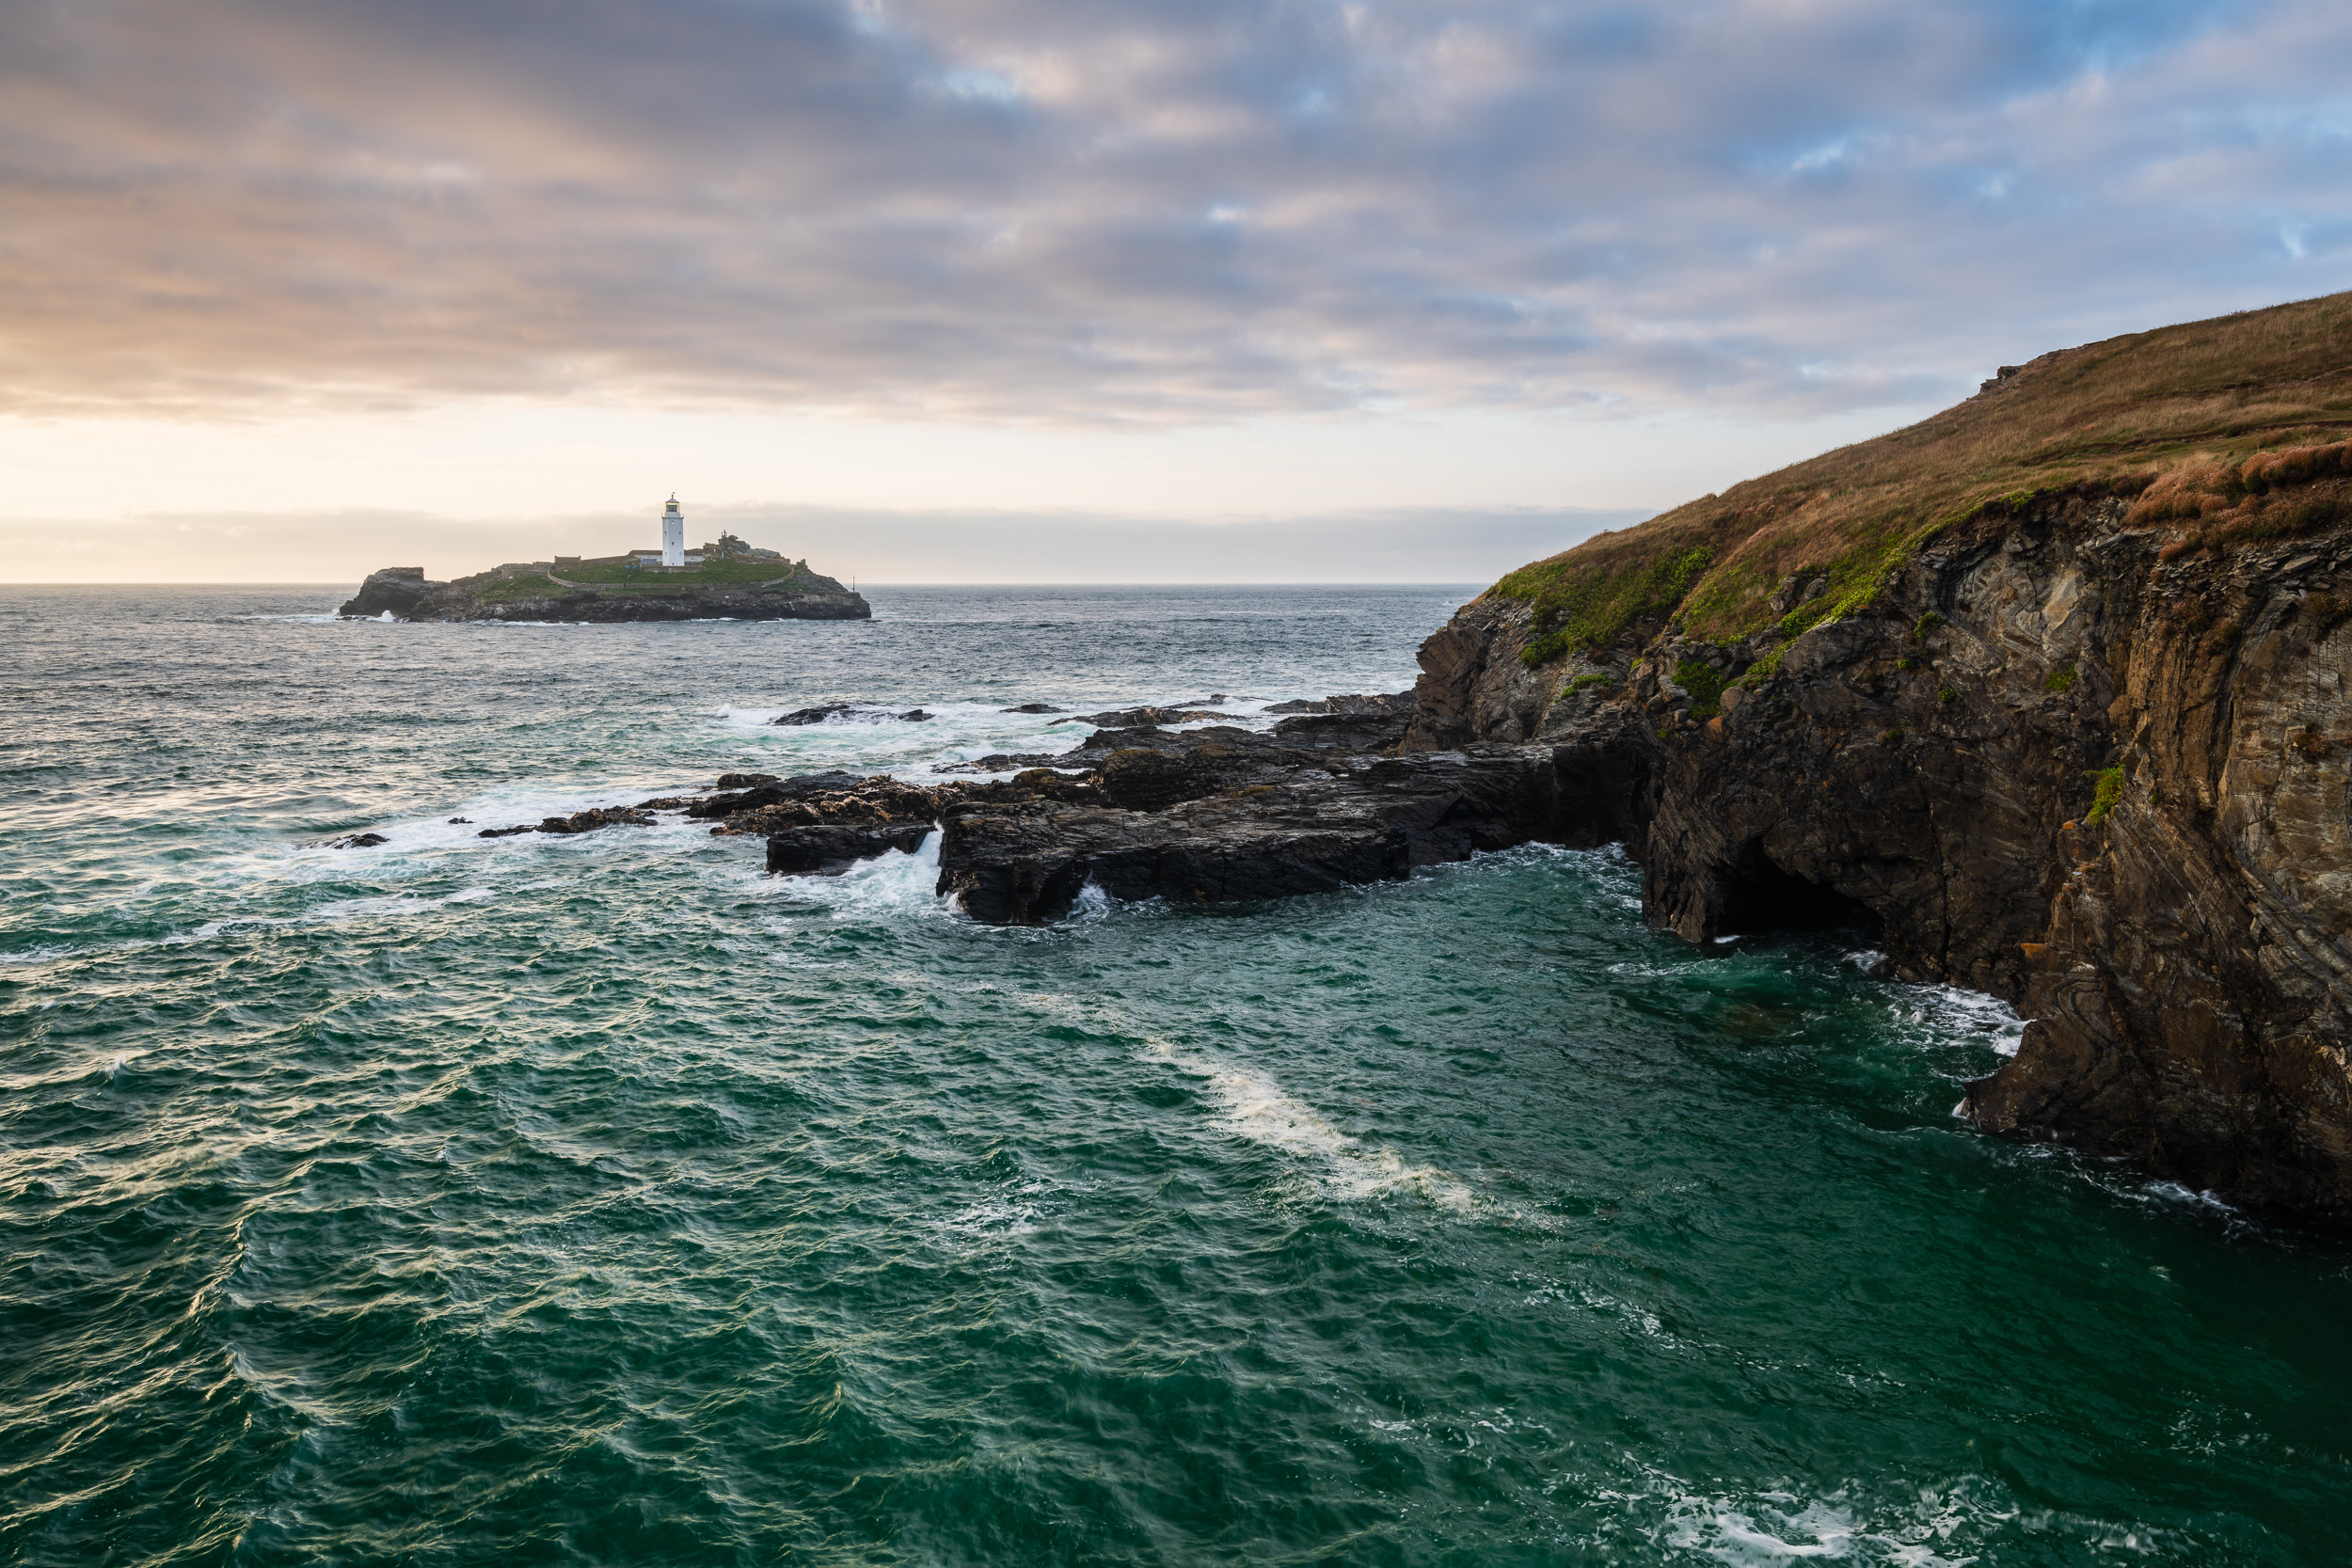 Godrevy Lighthouse from the South West Coast Path, Cornwall  - Nikon D850, Nikkor 16-35 mm f/4 at 25 mm, f/11, 1/10th sec @ ISO 64, Lee Filters Landscape Polariser and 2 stop ND Grad.